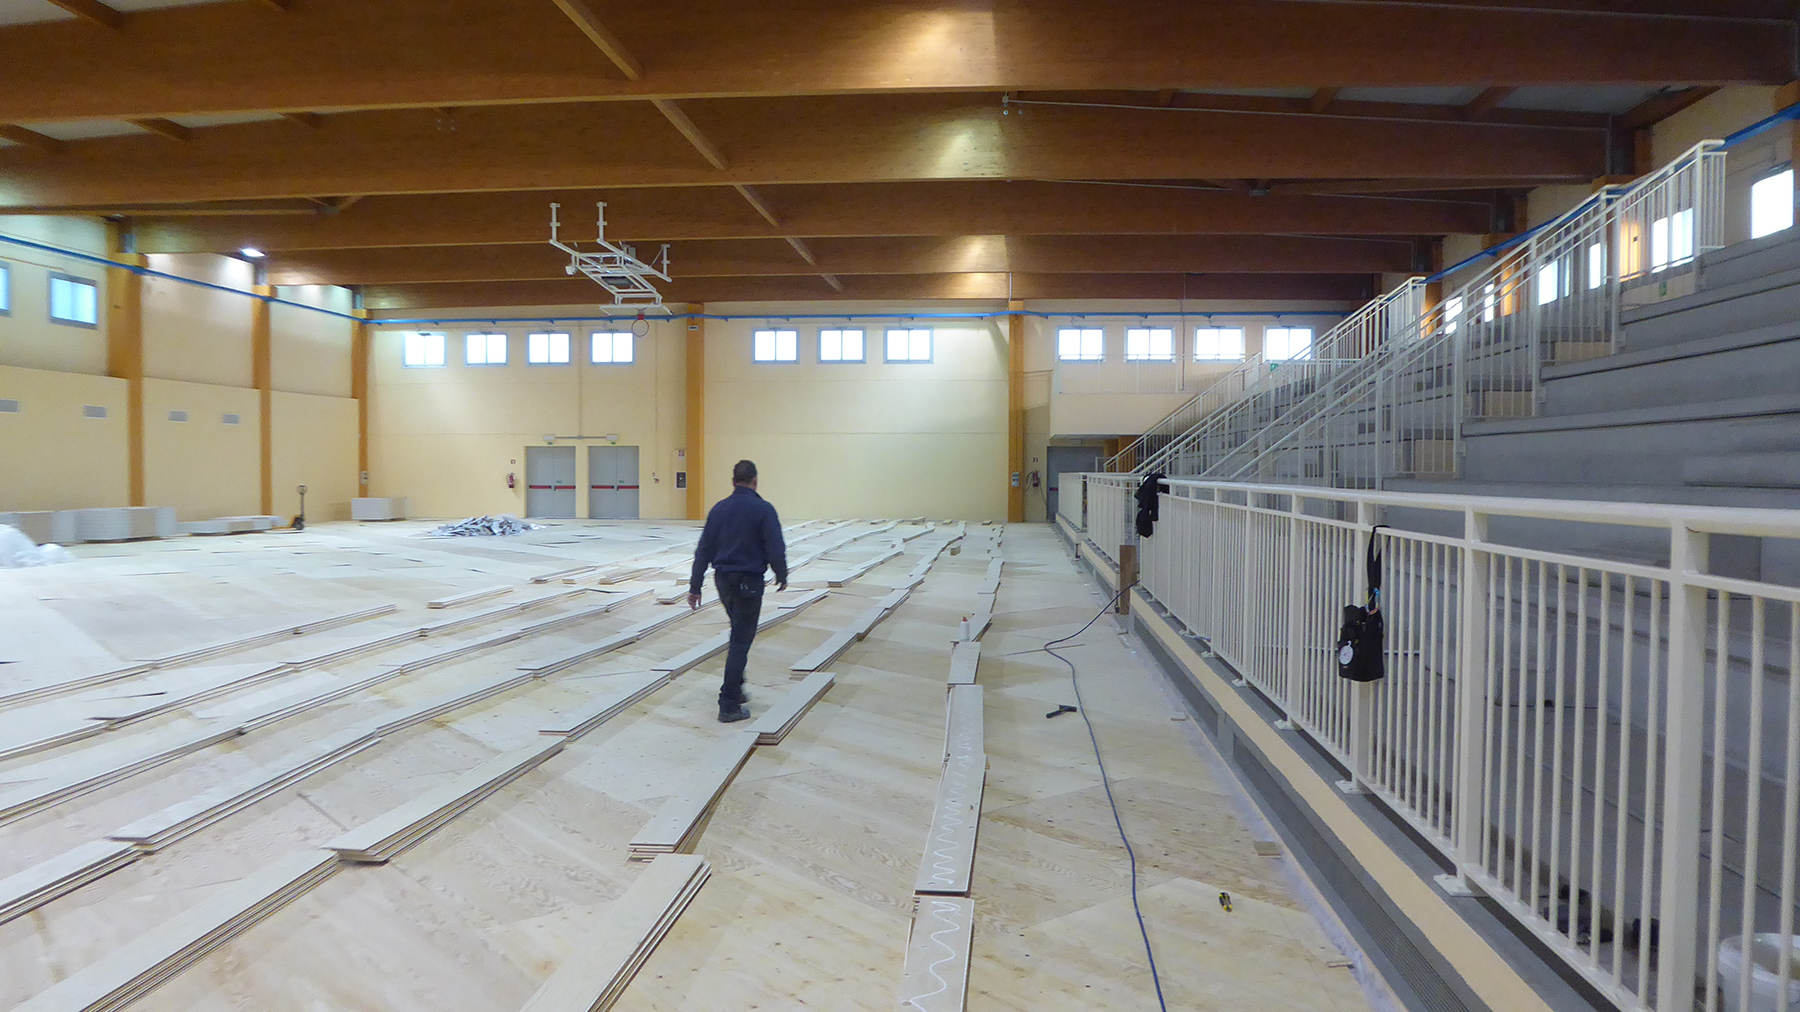 The beginning of the laying of the parquet